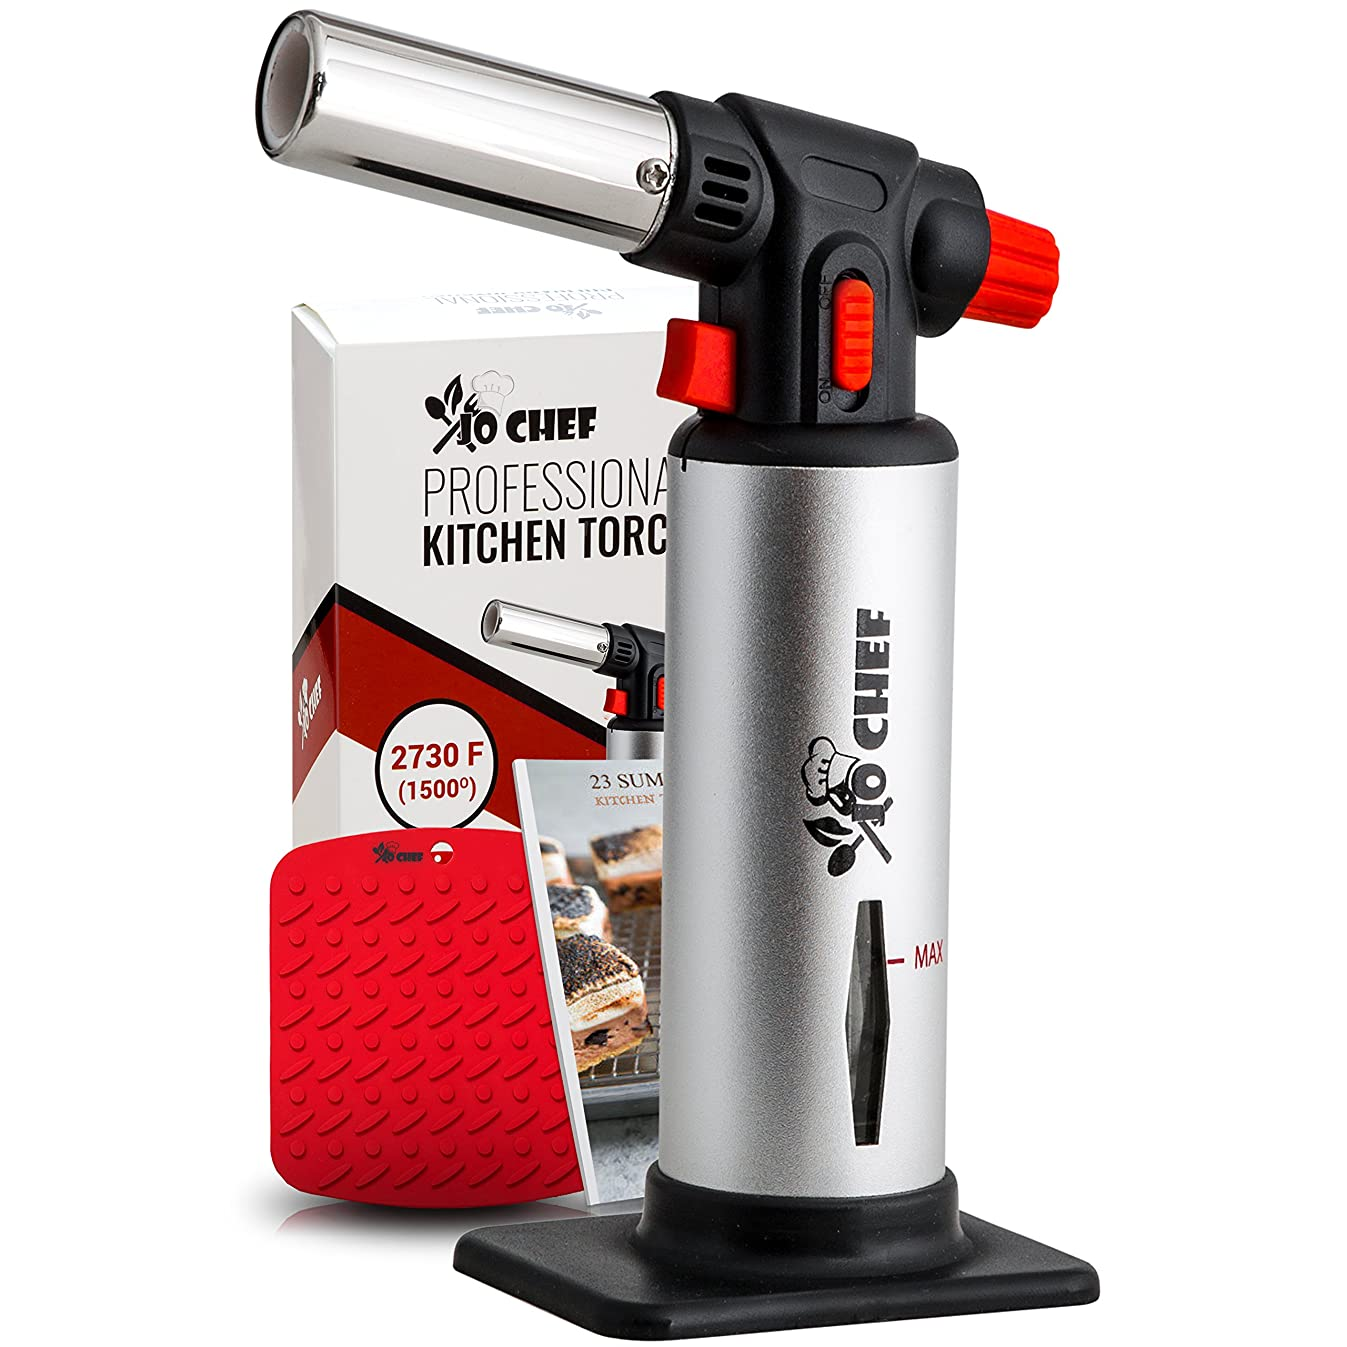 Jo Chef Kitchen Torch, Blow Torch - Refillable Butane Torch With Adjustable Flame - Culinary Torch, Creme Br?lée Torch For Cooking Food, Baking, BBQ & More + FREE Recipe eBook (With Fuel Gauge)